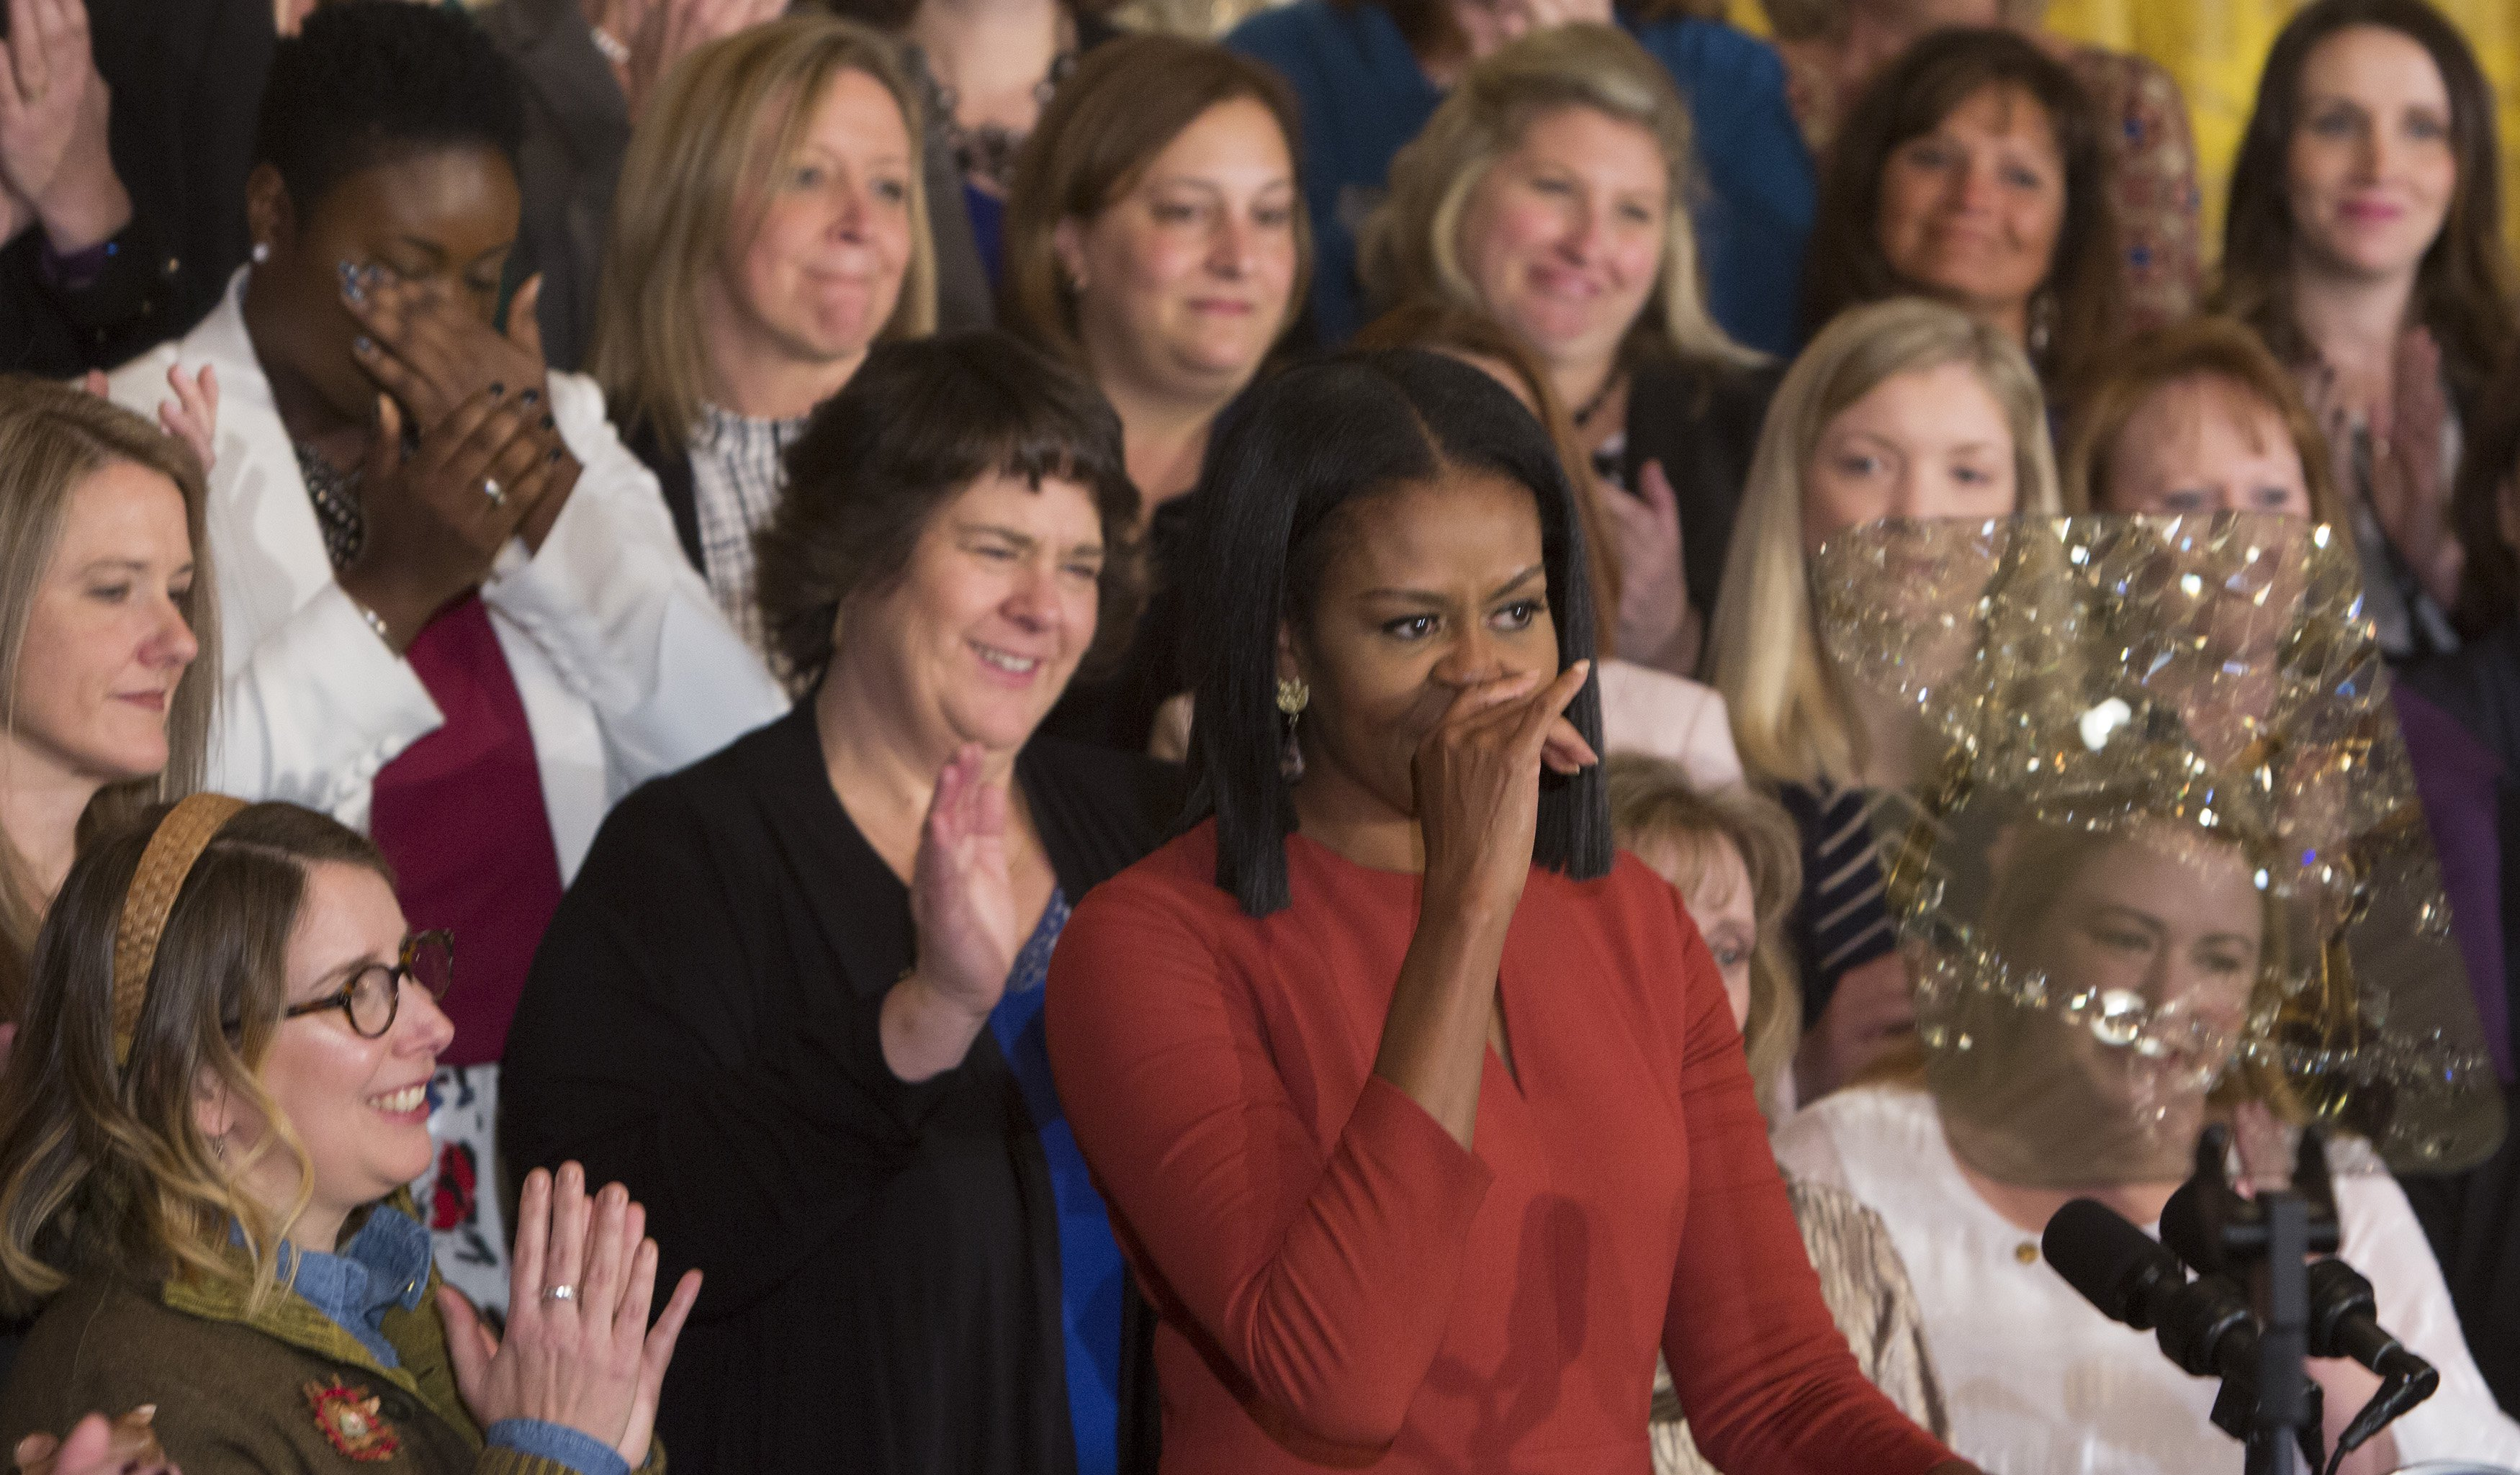 Michelle Obama pause to control her emotions as she gives her final remarks as US First Lady at the 2017 School Counselor of the Year event at the White House in Washington DC, January 5, 2017.  / AFP PHOTO / CHRIS KLEPONIS